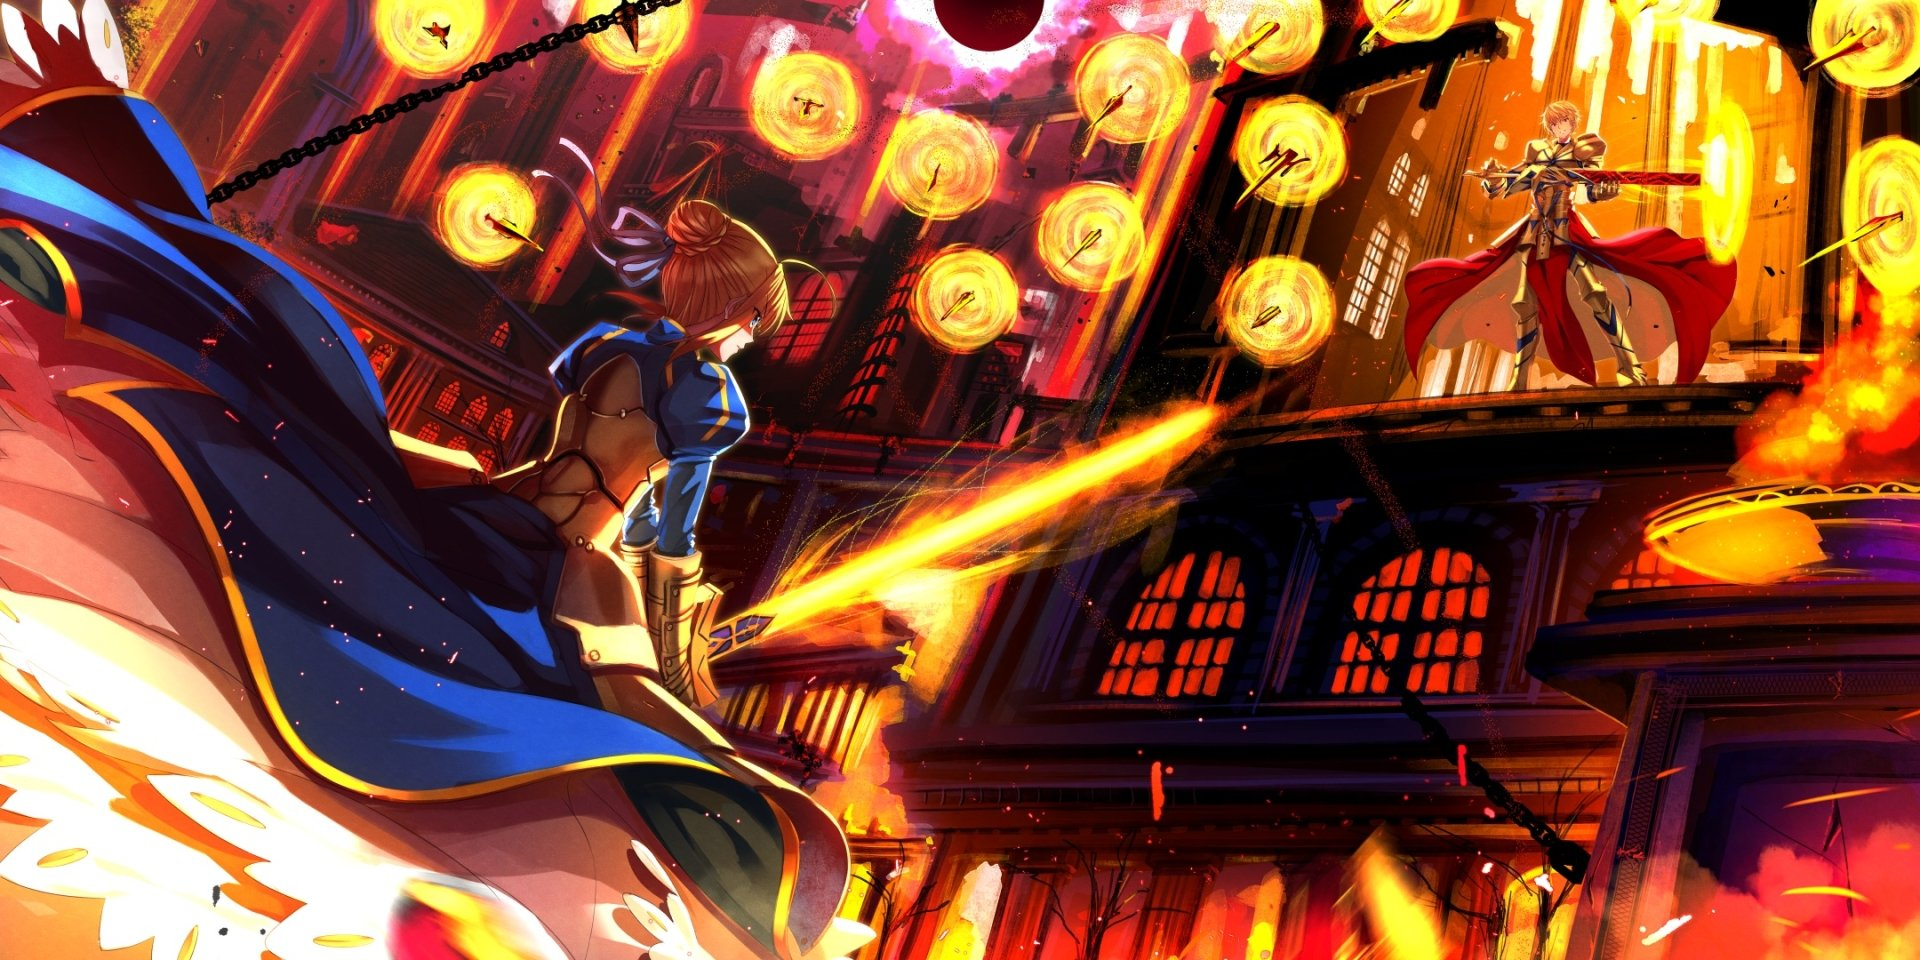 Anime-Fate-Stay-Night-Saber-Fate-Series-Gilgamesh-Fate-Stay-Night-Saber-Lily-Dress-Weapon-Espad-wallpaper-wp3602540